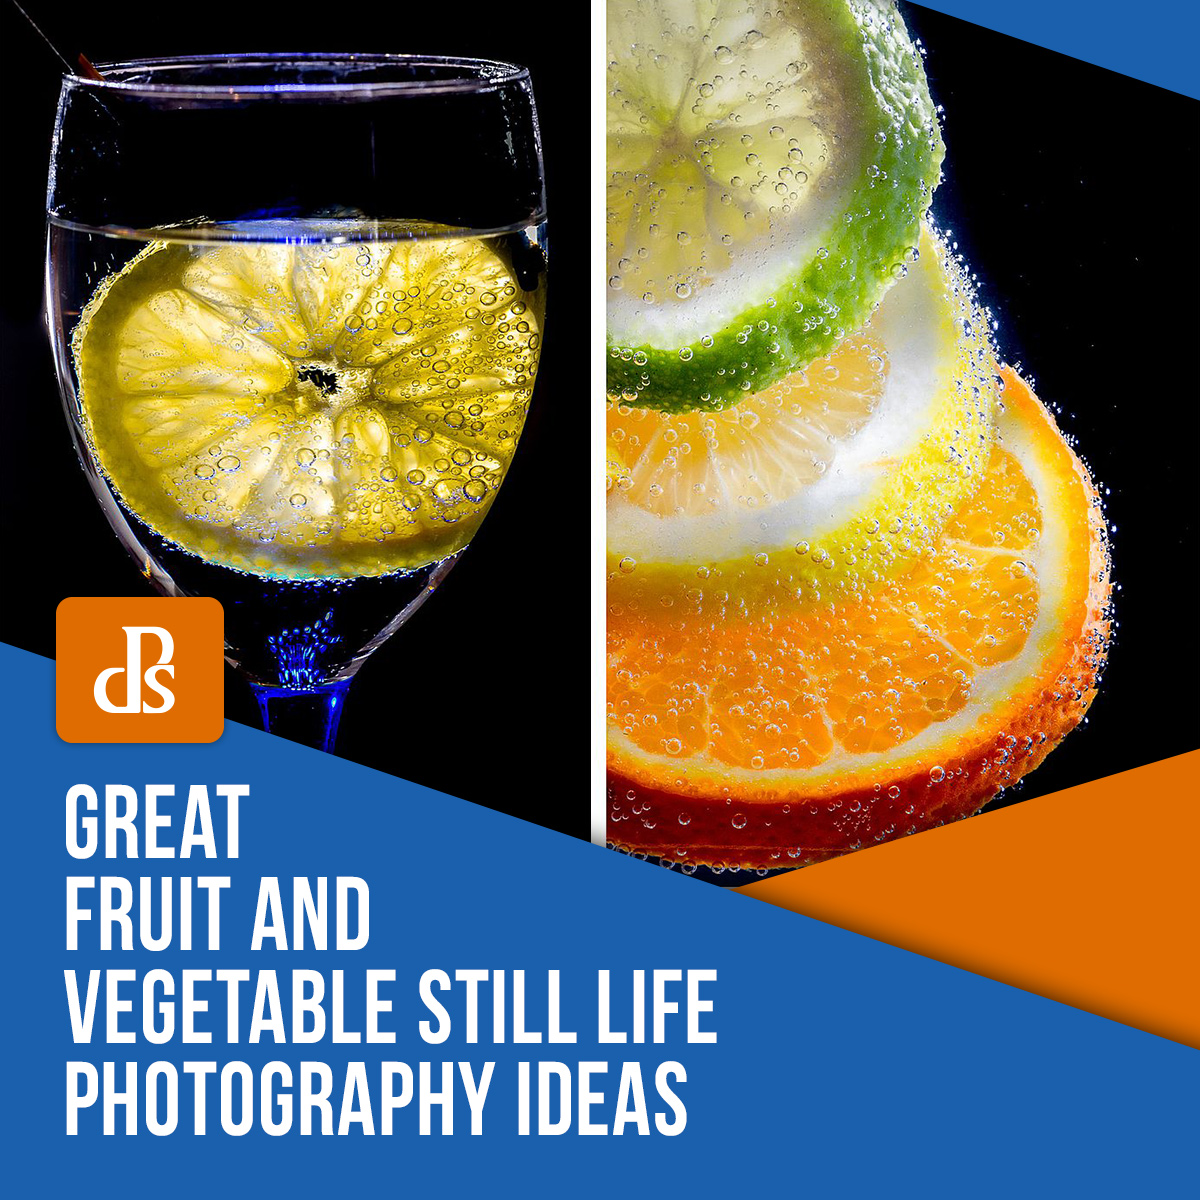 dps-fruit-and-vegetable-still-life-photography-ideas